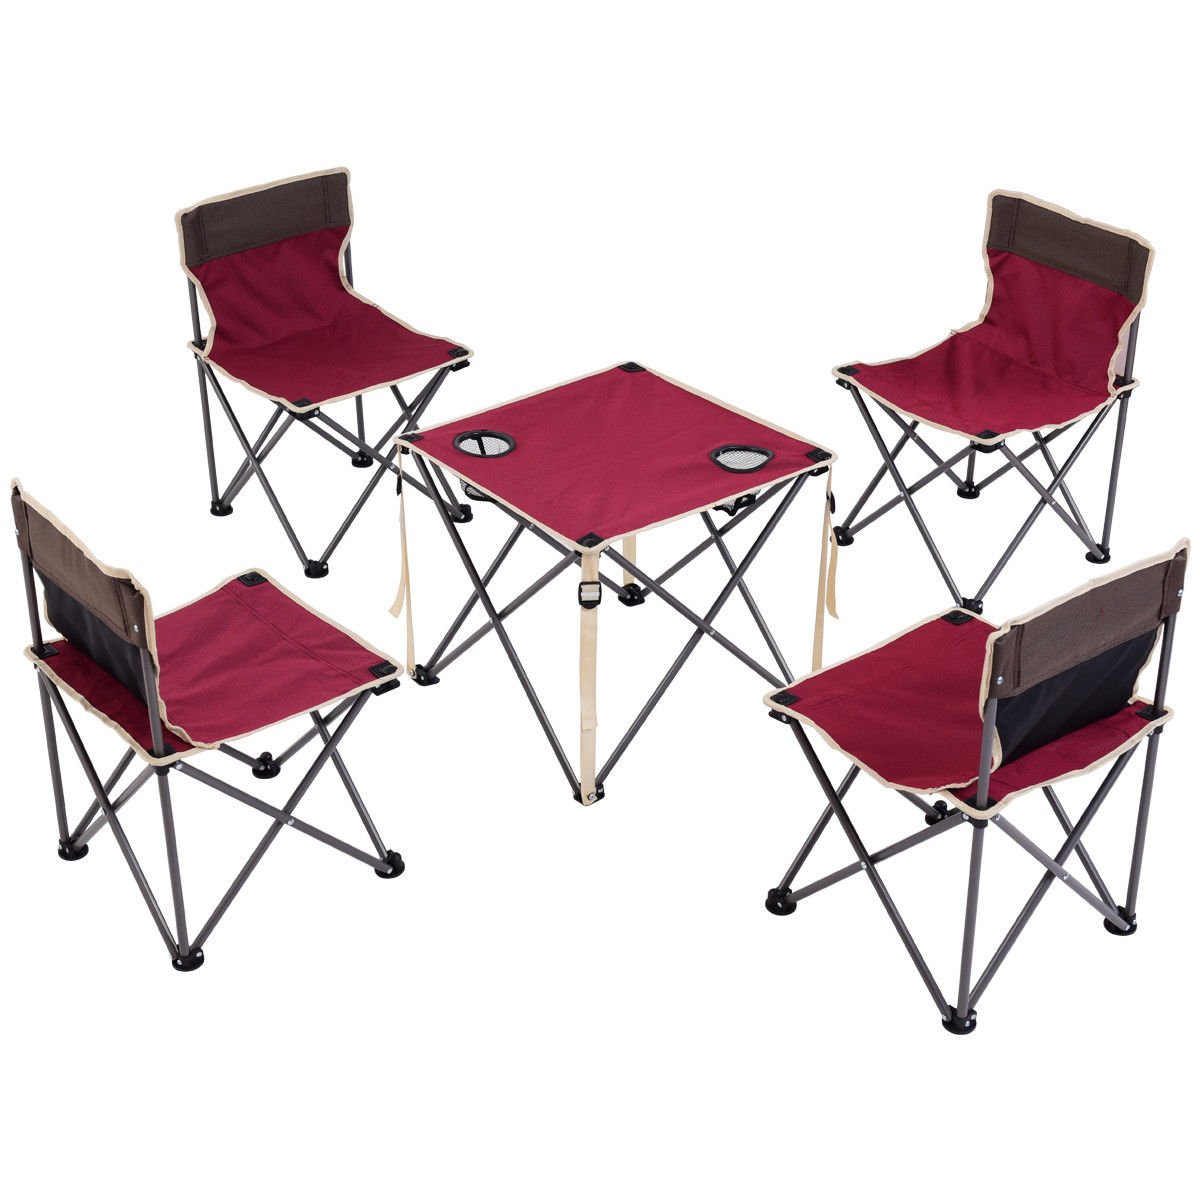 Costzon Kids Portable Folding Table And 4 Chairs Set, Steel Lightweight Outdoor Indoor Compact Set for BBQ, Camping, Fishing, Travel, Hiking, Garden, Beach, 600D Oxford Cloth with Carry (Burgundy)